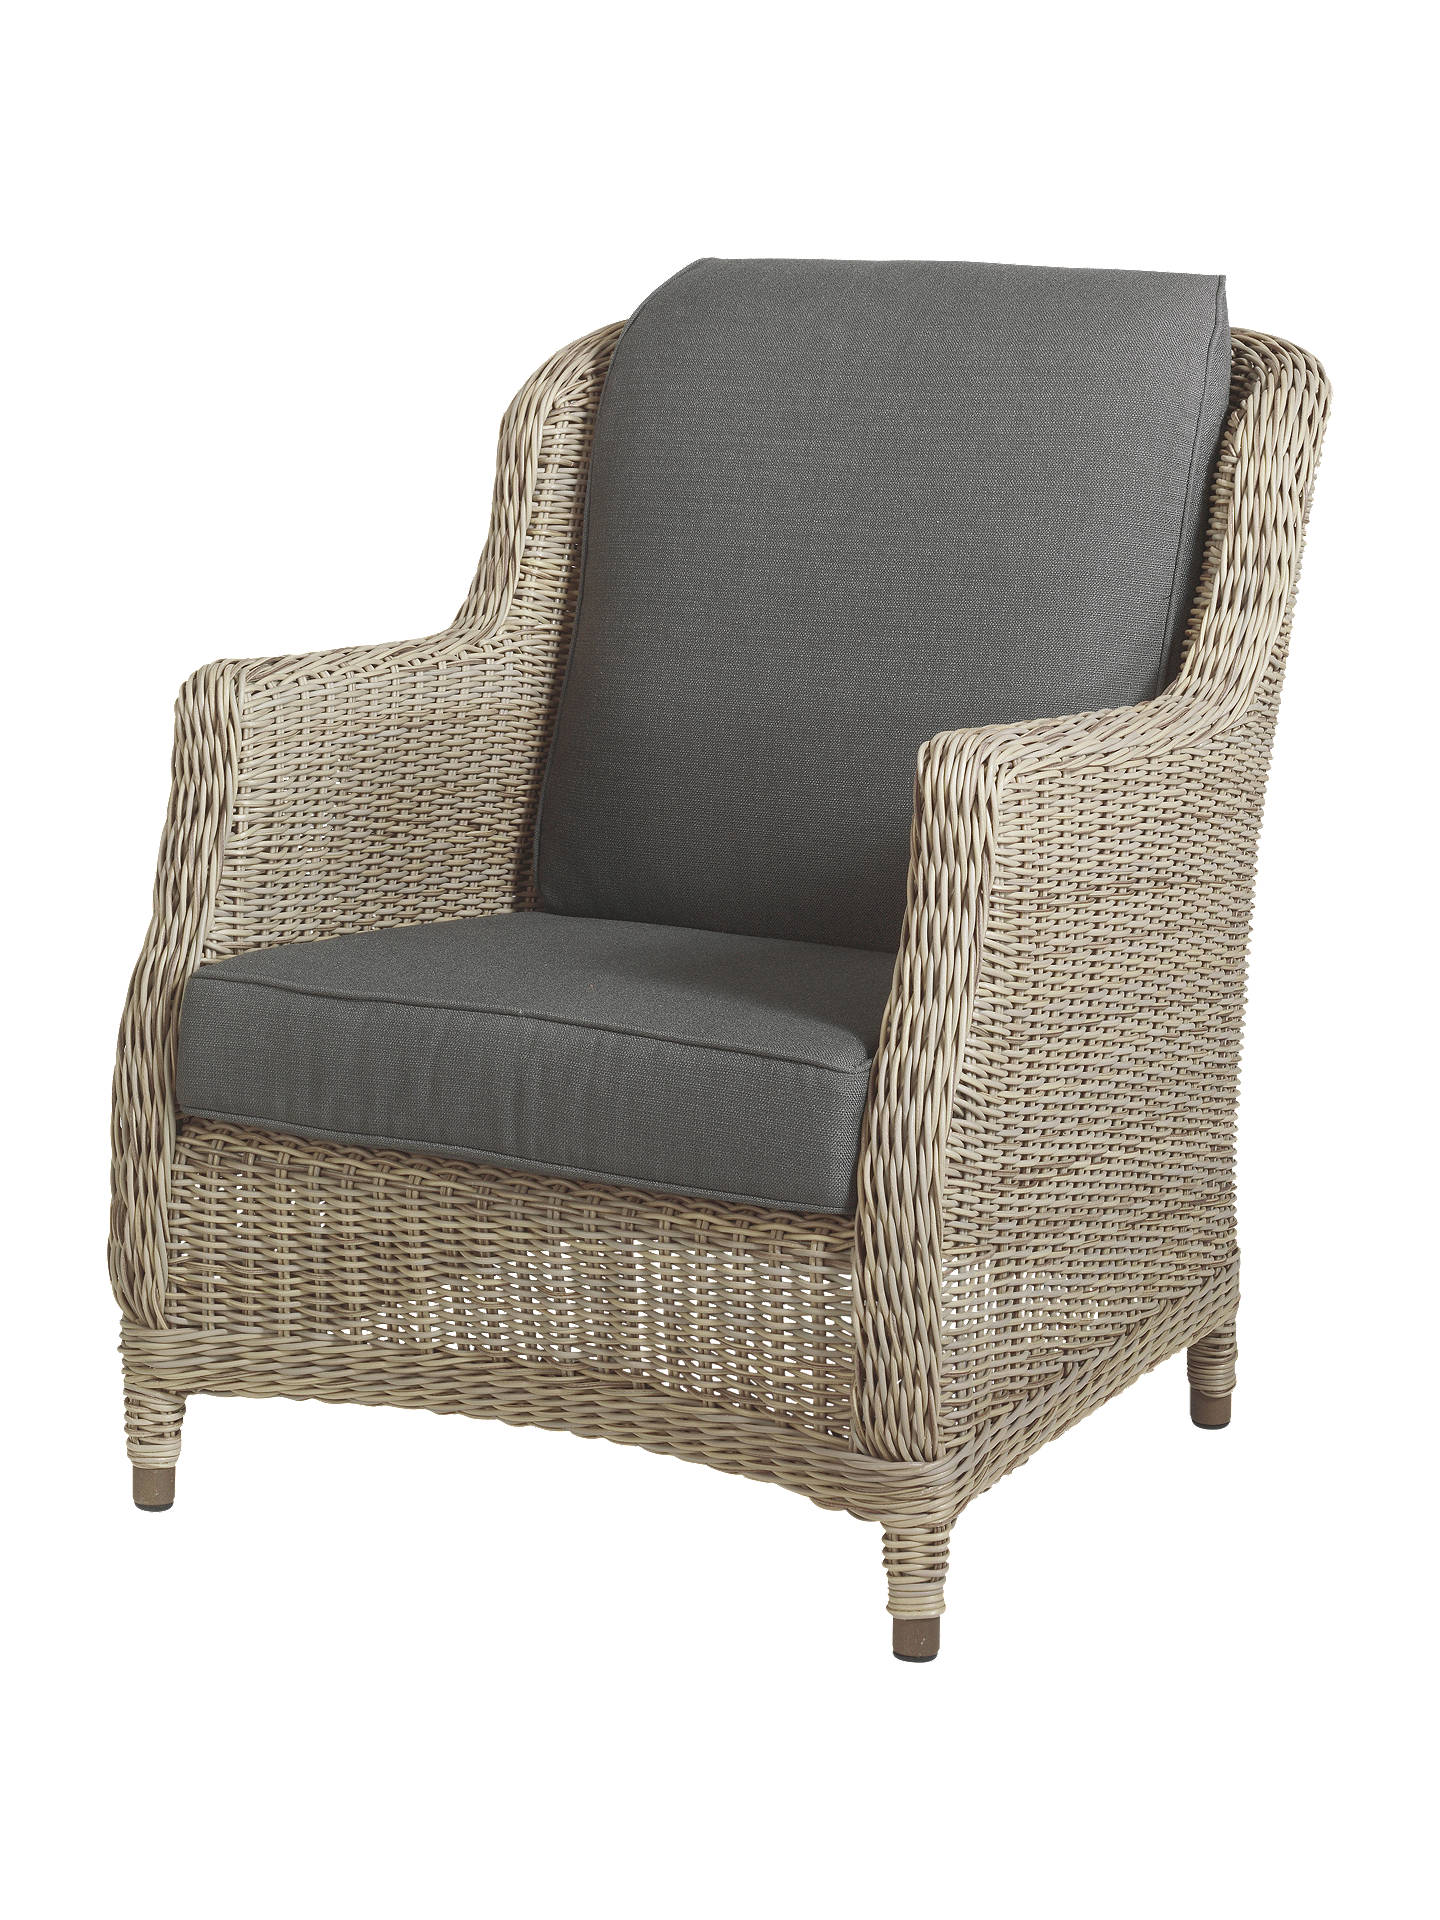 Buy 4 seasons outdoor valentine high back garden armchair pure online at johnlewis com